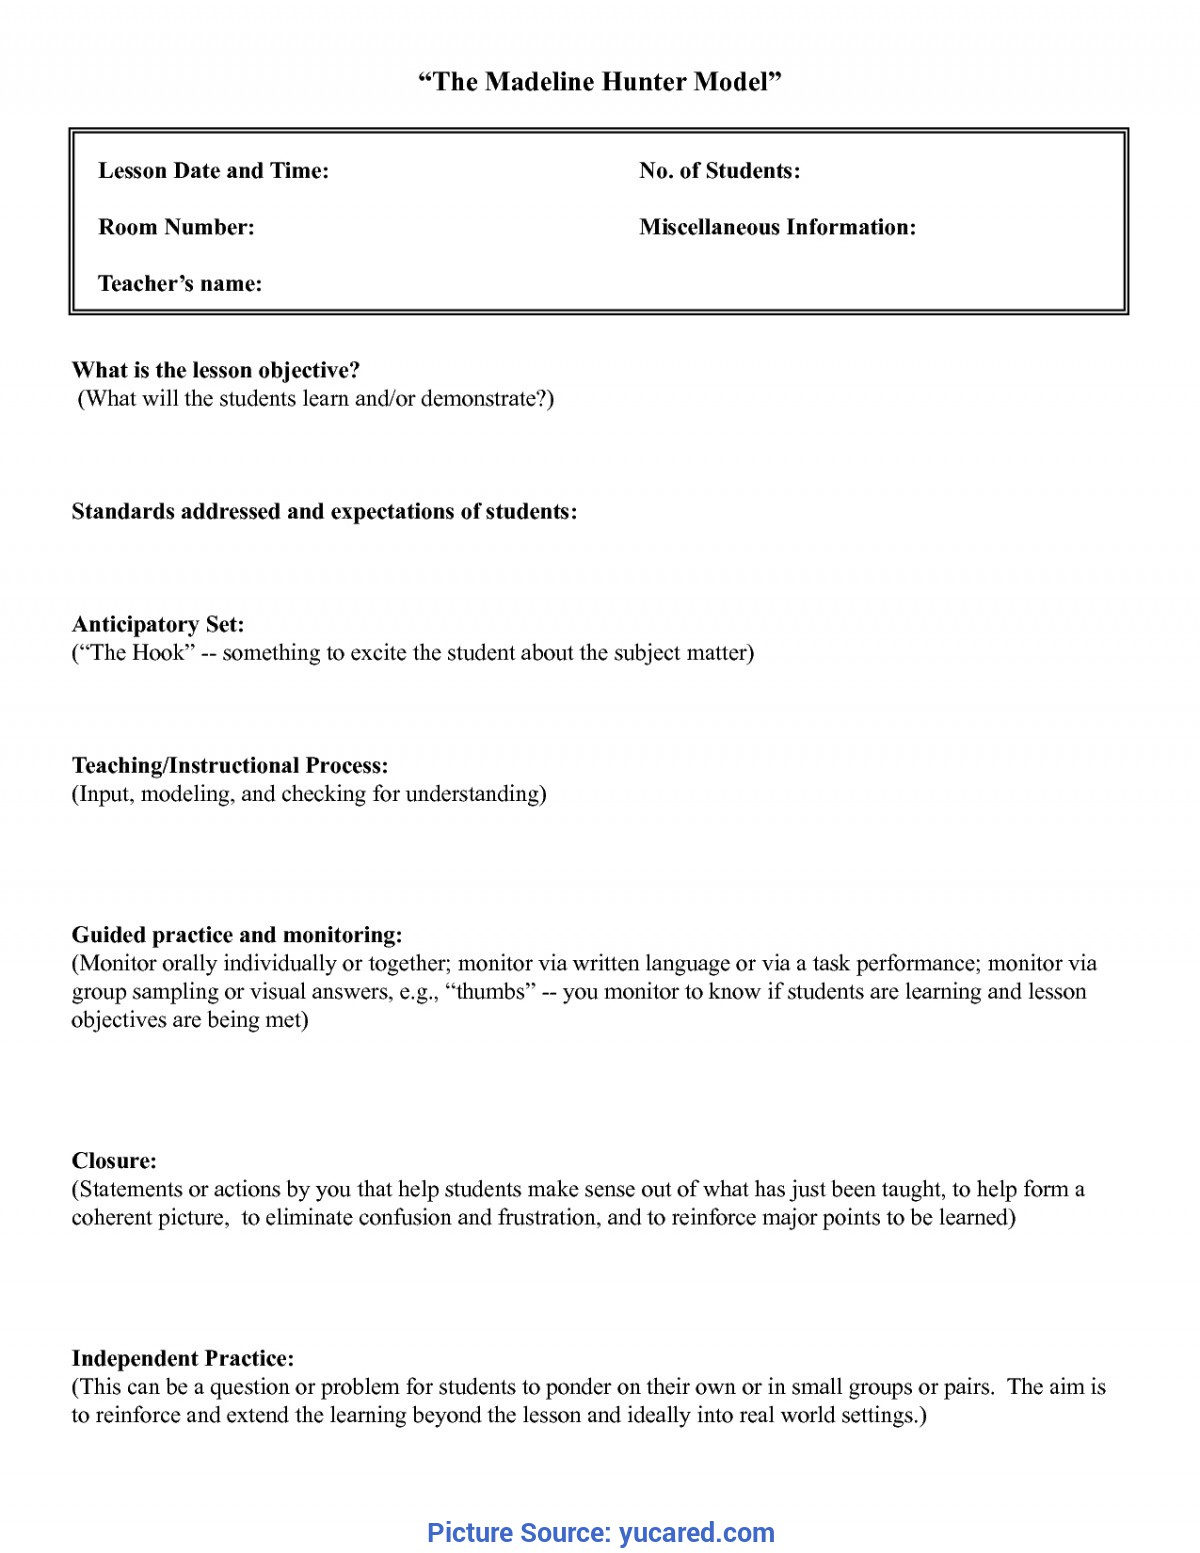 Useful Madeline Hunter Lesson Plan Guide Madeline Hunter pertaining to Madeline Hunter Lesson Plan Blank Template